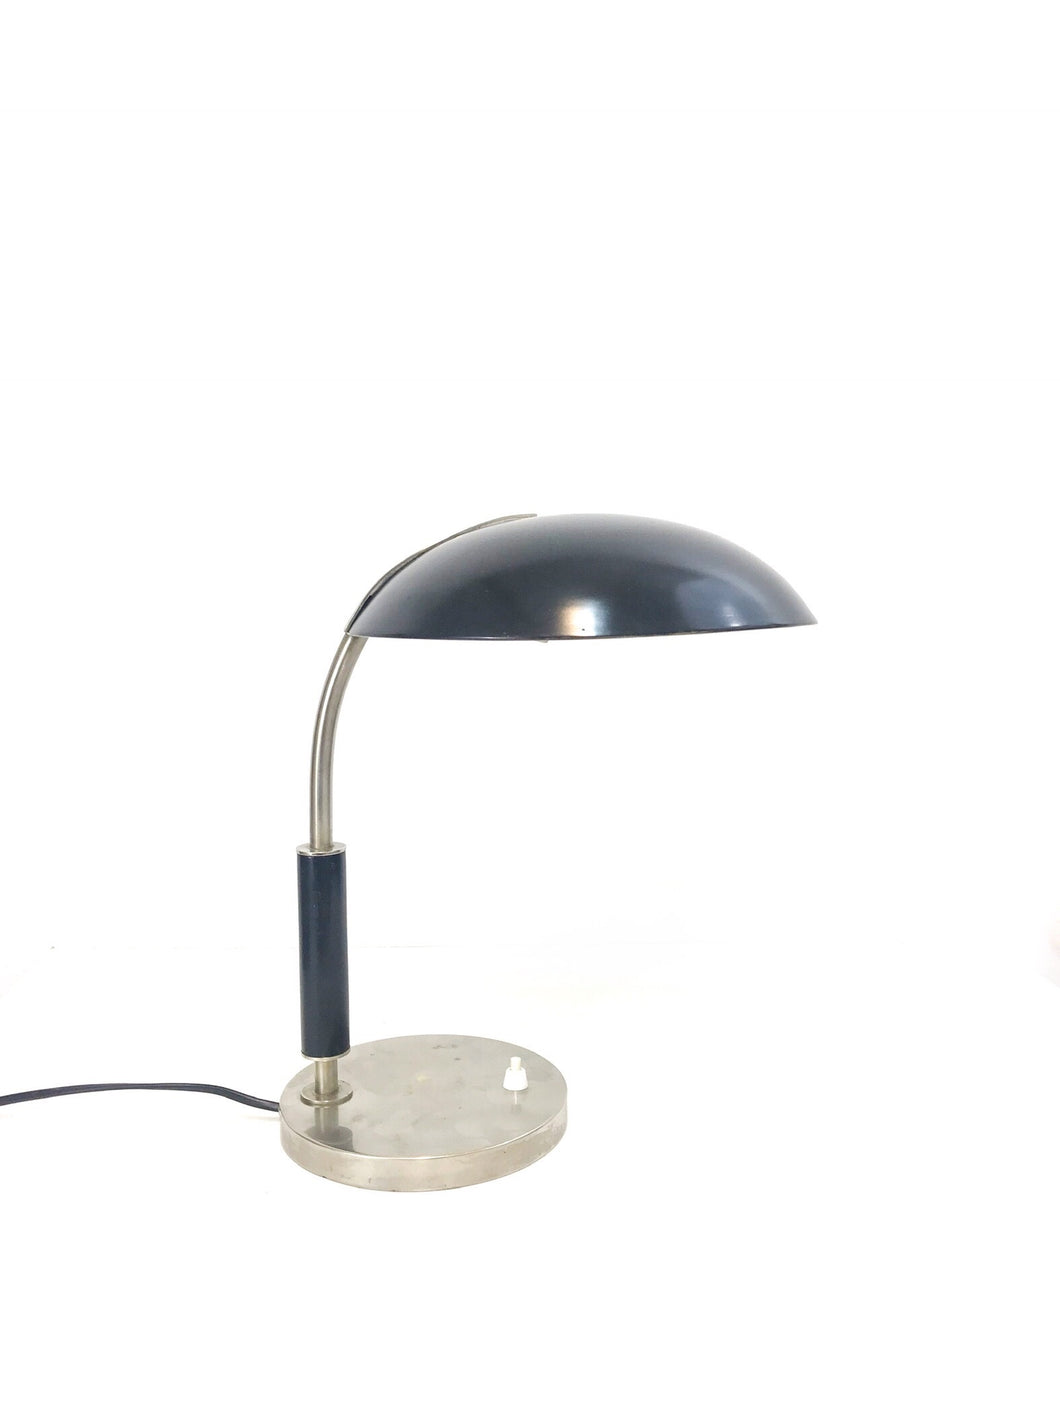 TABLE LAMP BY HARALD NOTINI FOR BÖHLMARKS